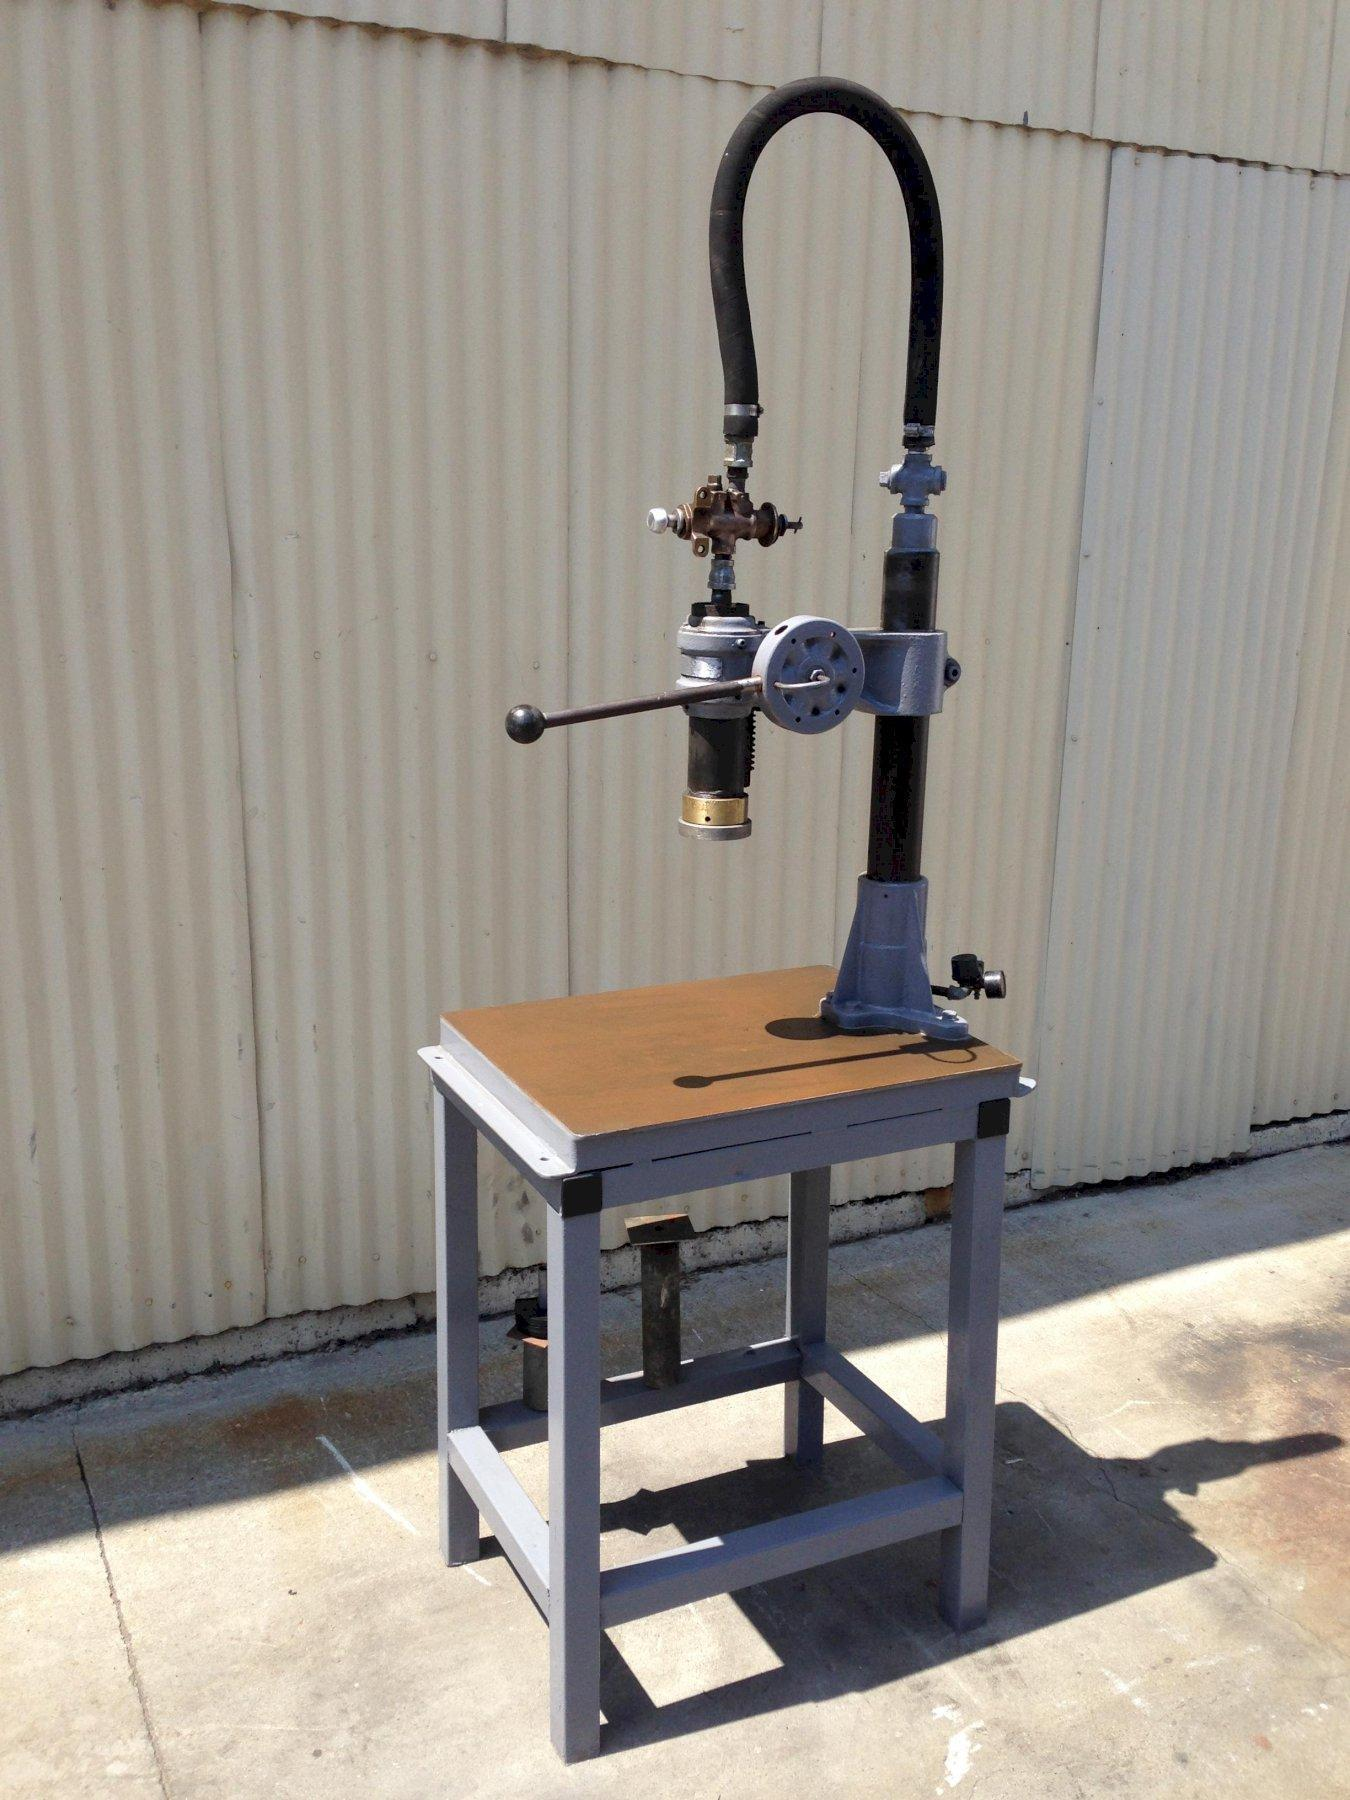 Redford Bench Blower - For Sale